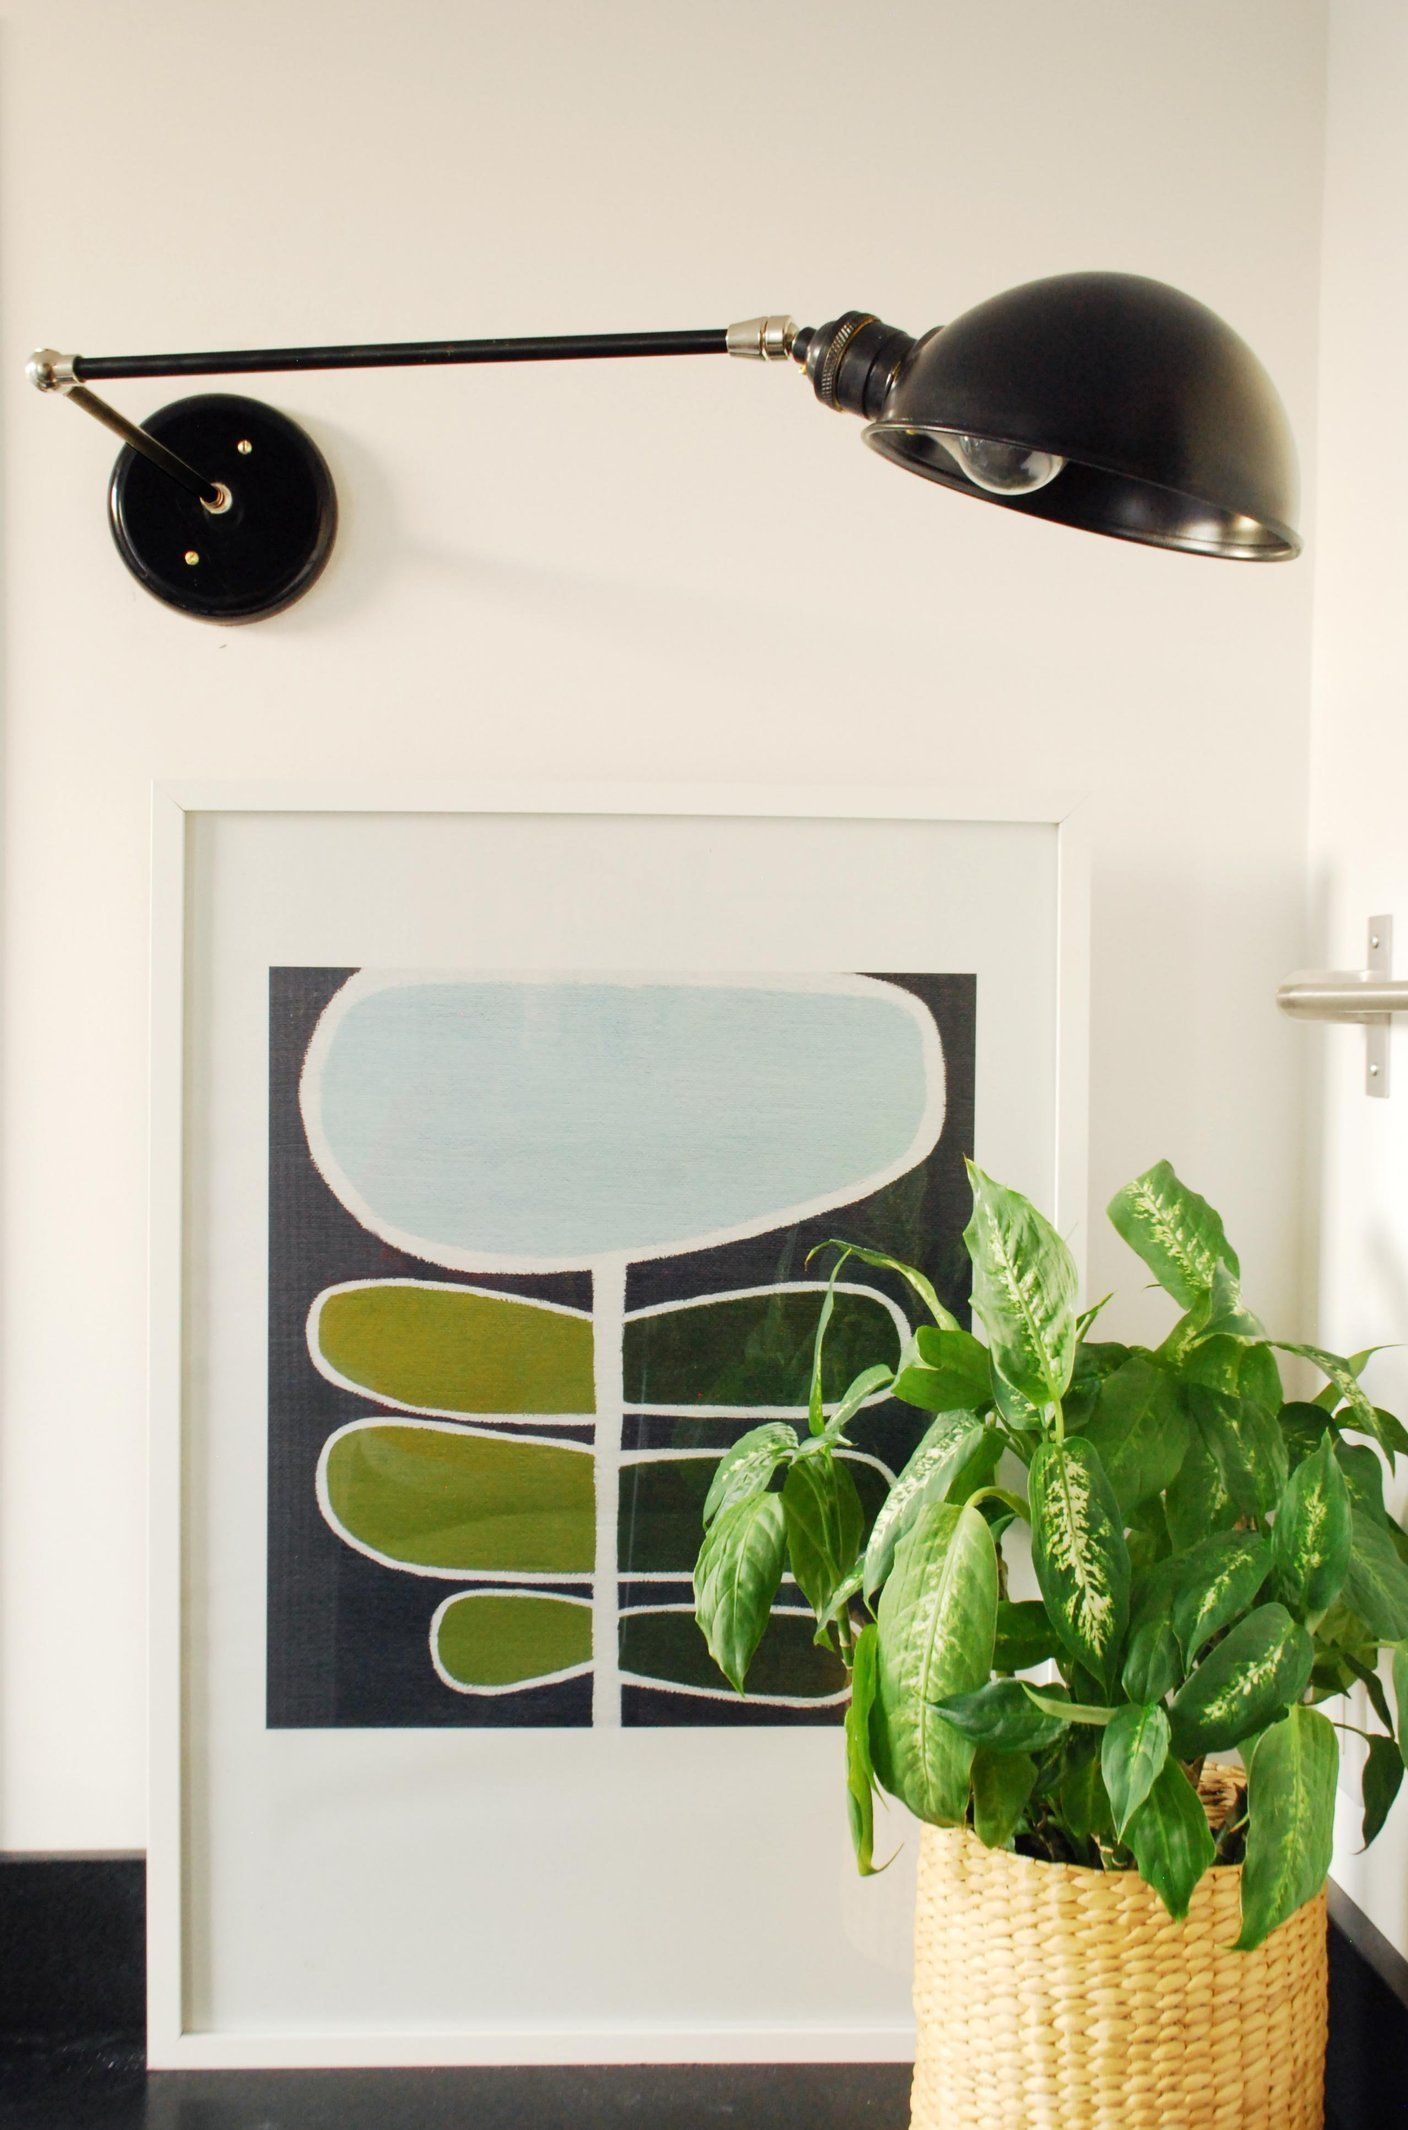 DIY Lighting Project: How To Make a Swing Arm Wall Sconce ...